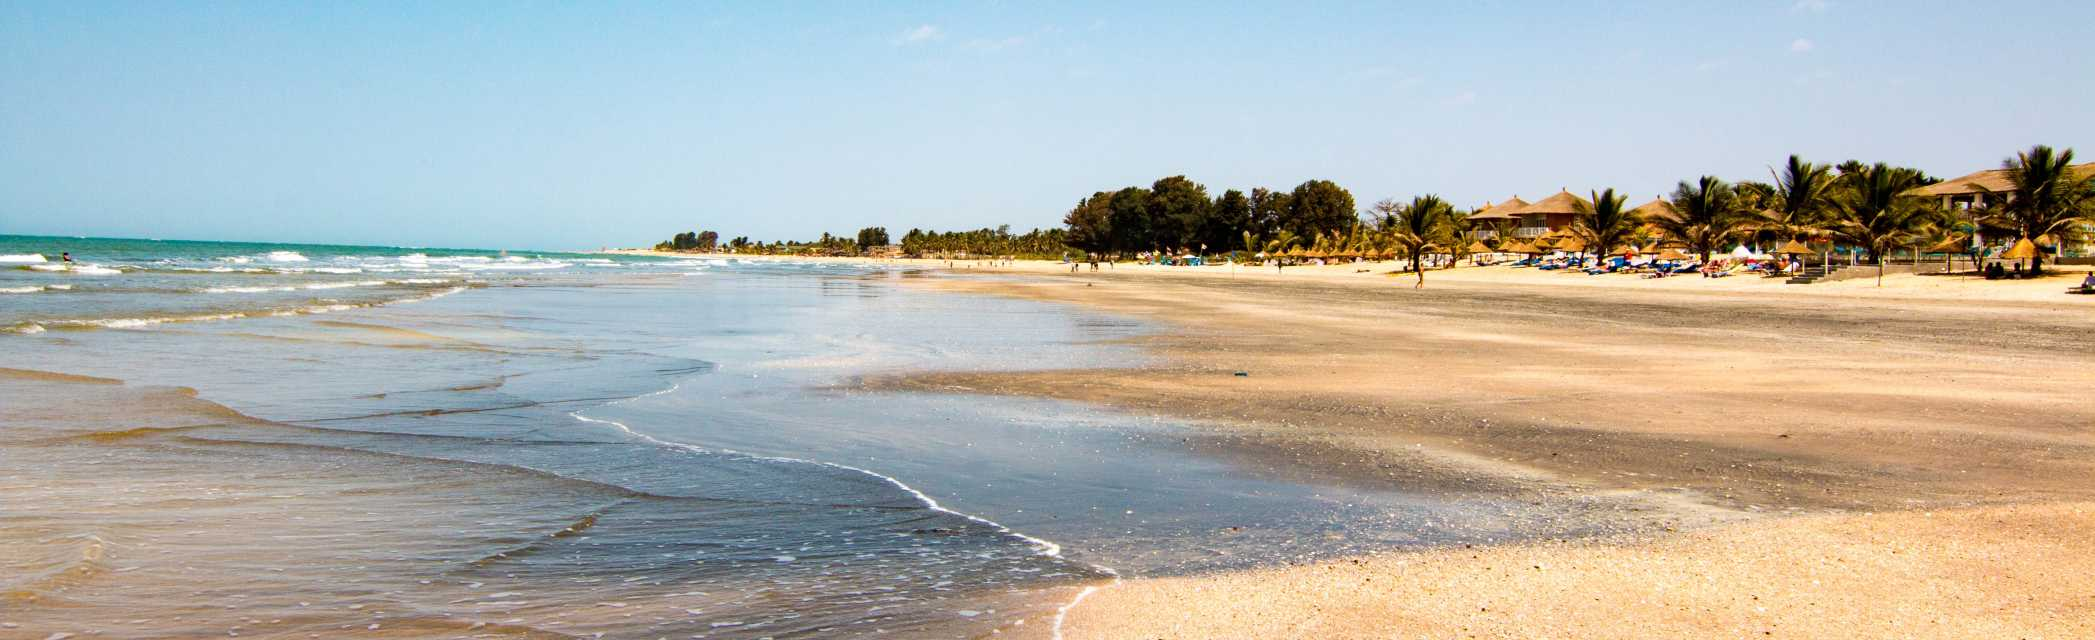 gettyimages-655418600-gambia-beach